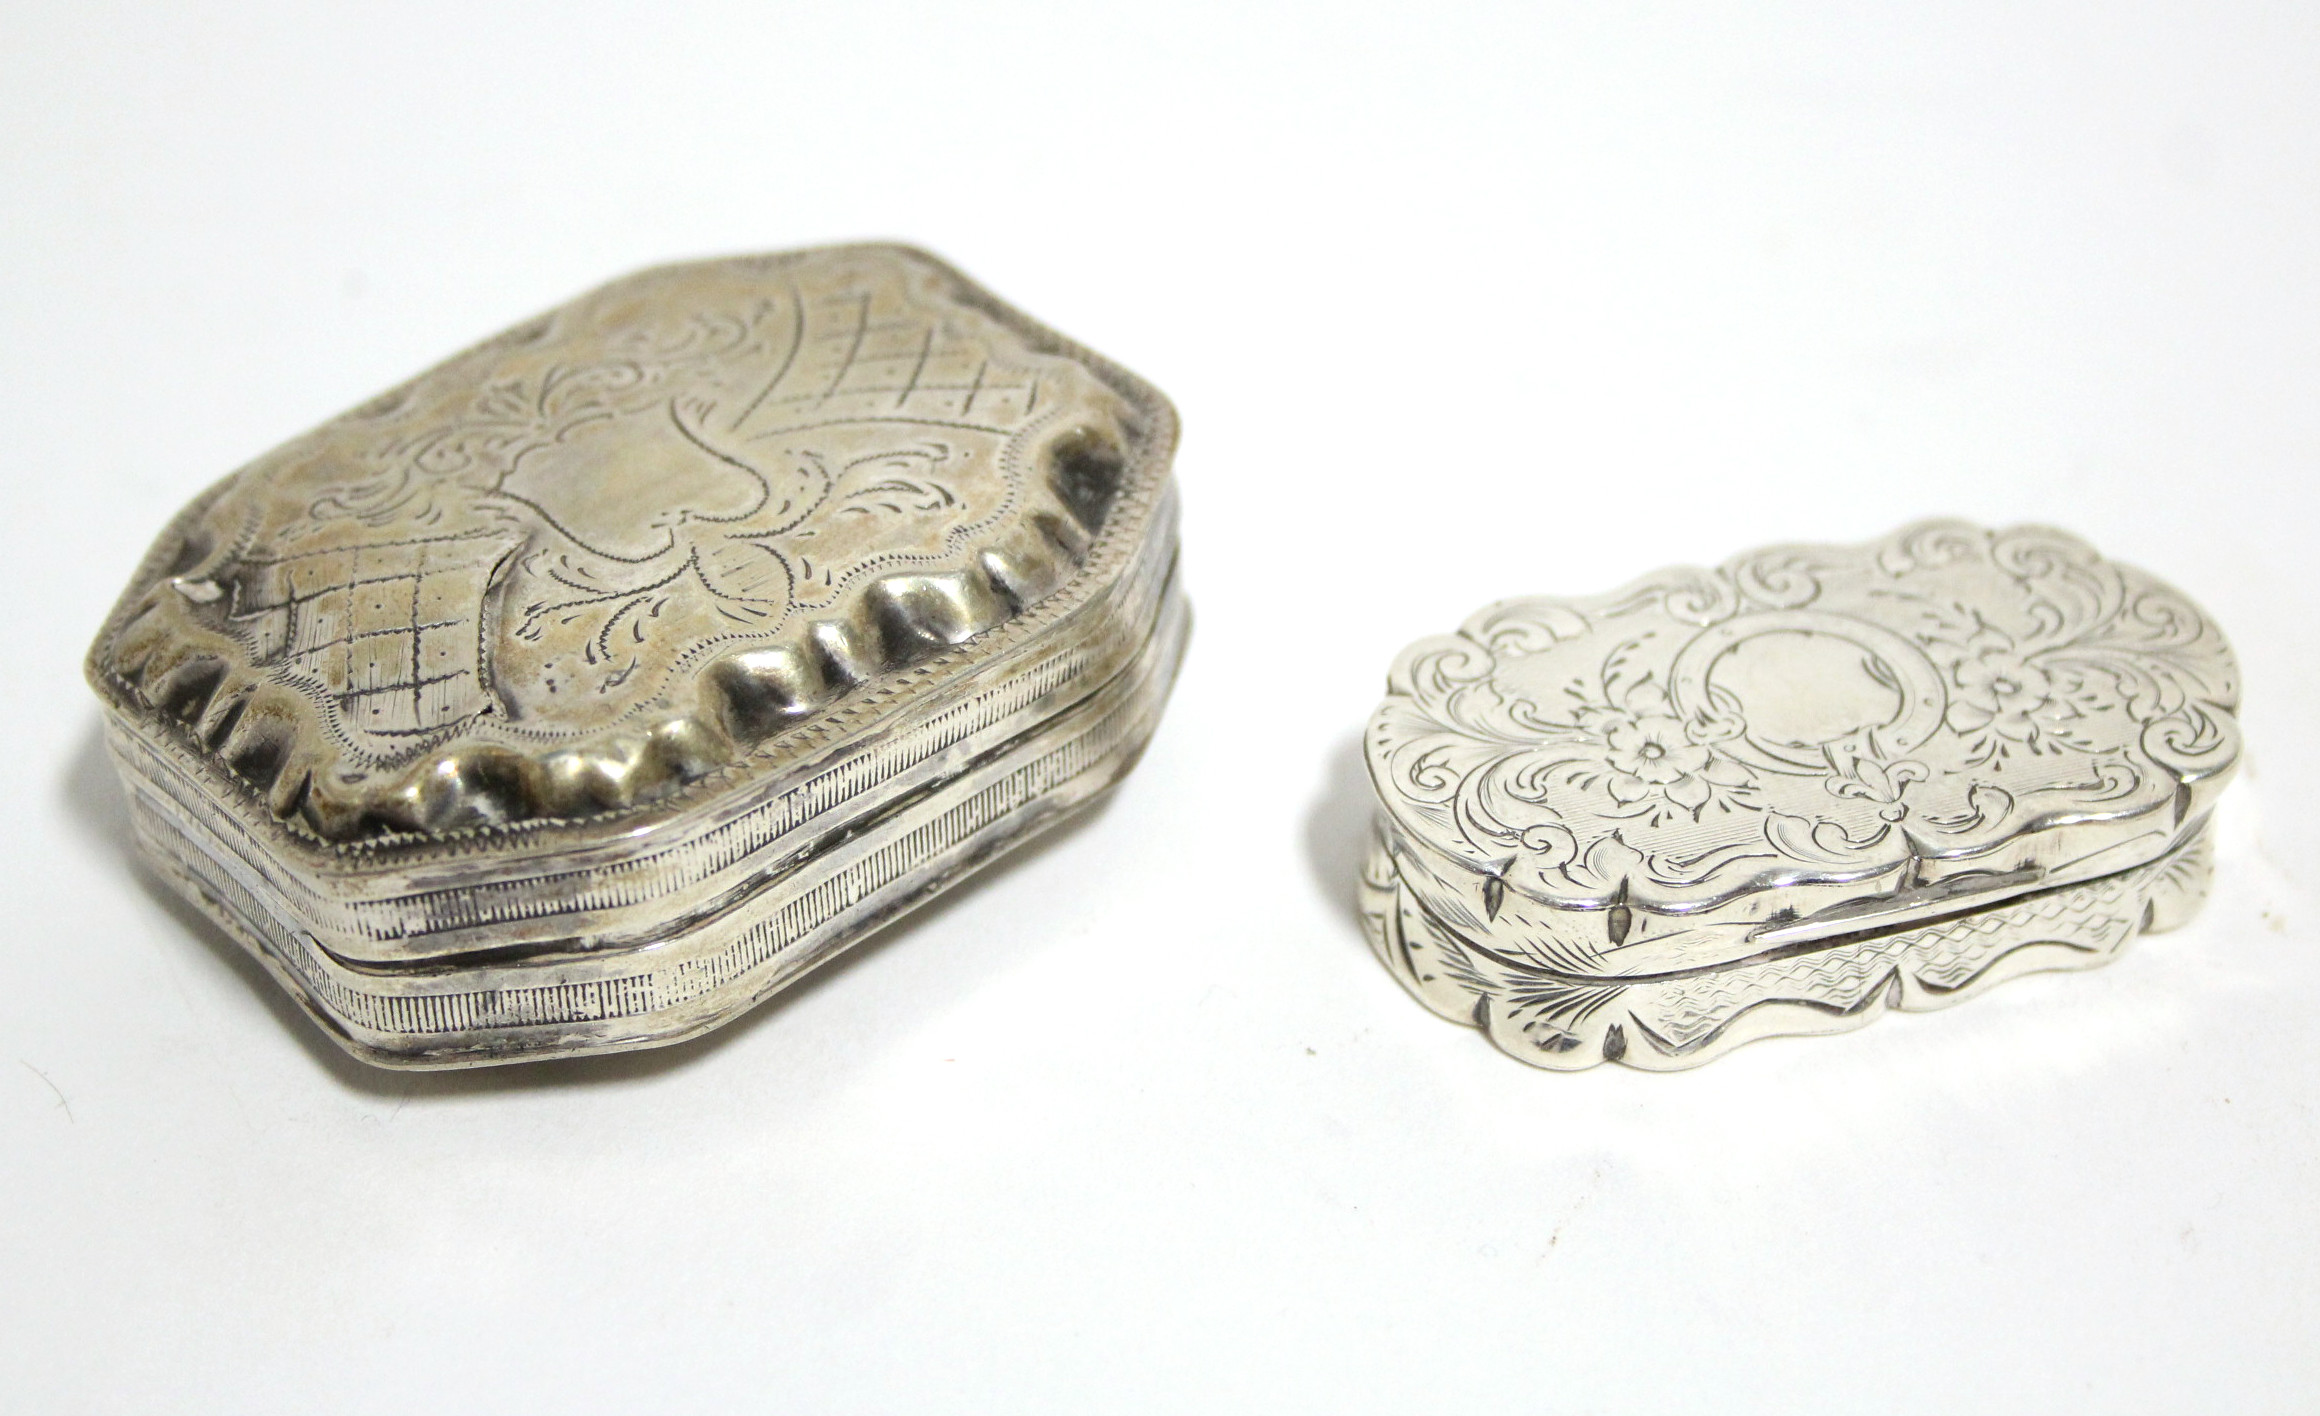 Lot 10 - A Victorian oblong vinaigrette with rounded ends & scroll border, engraved floral decoration,